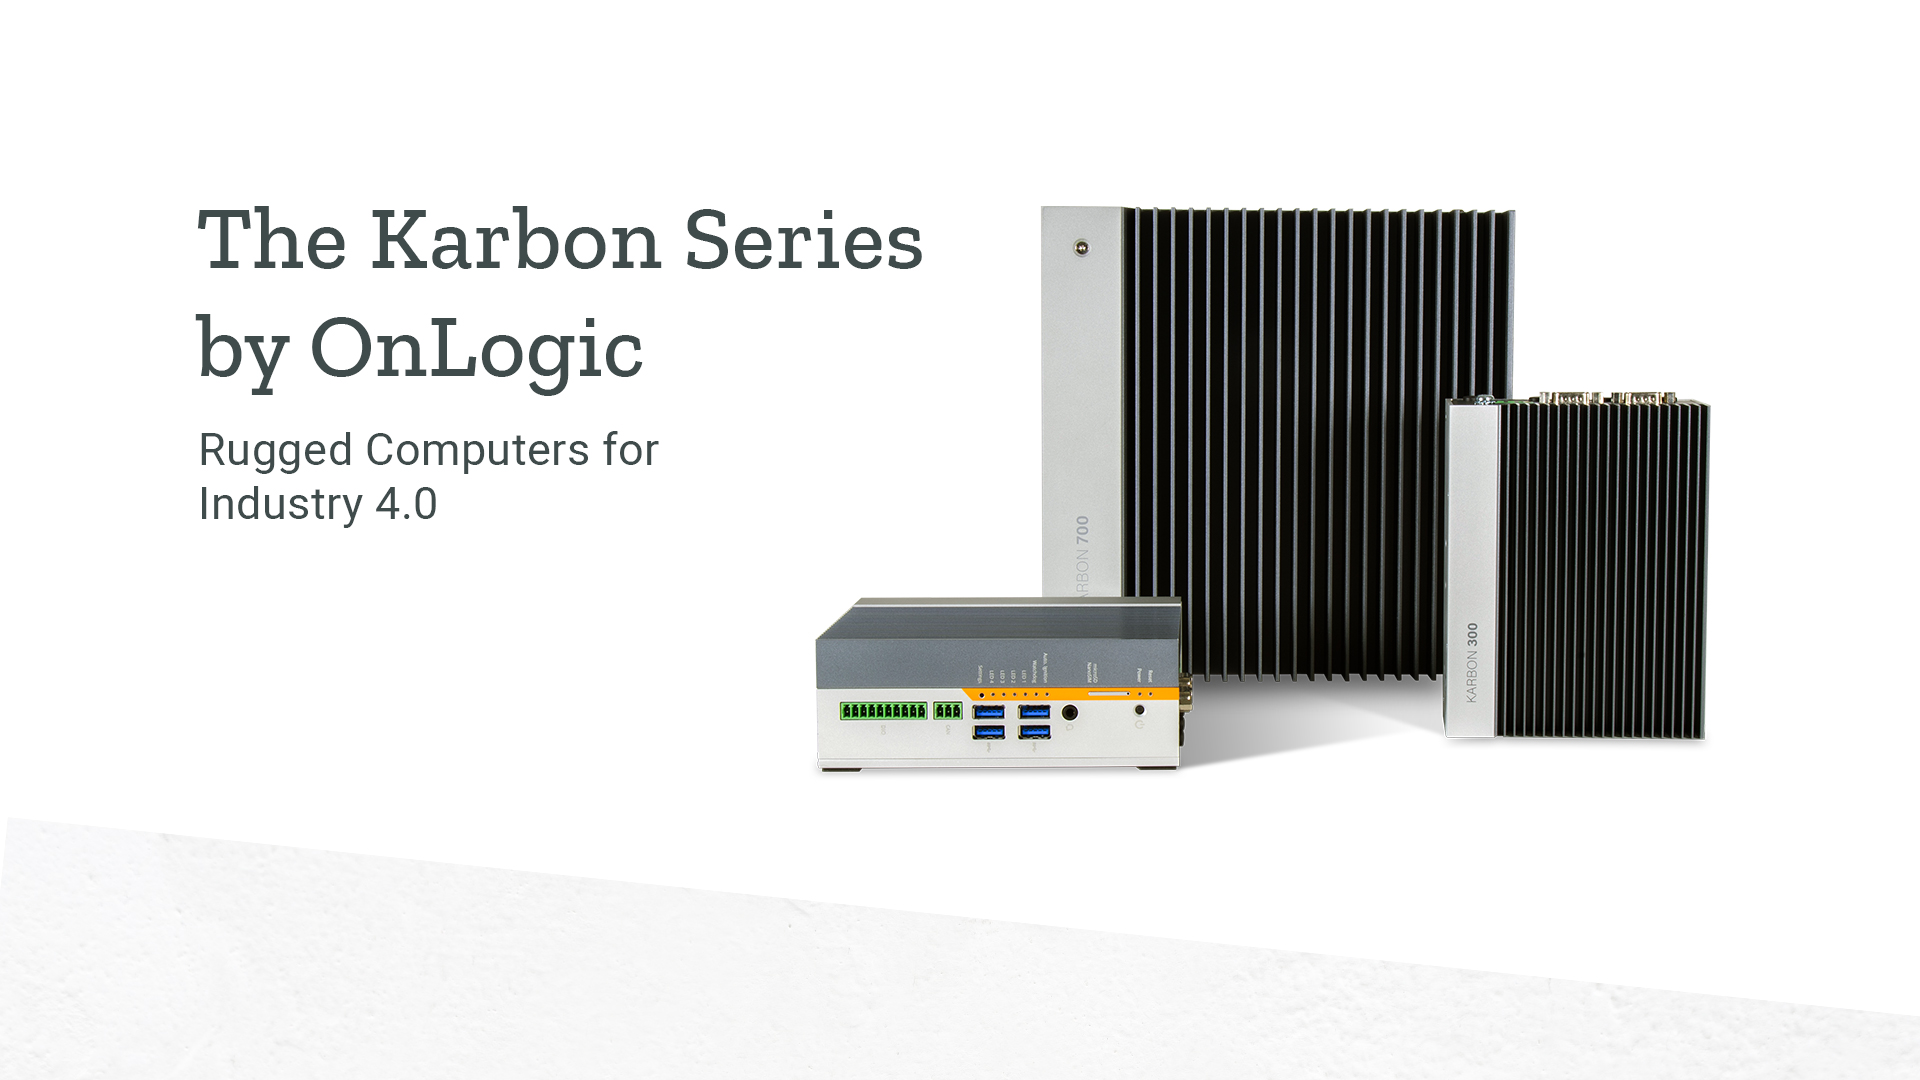 Karbon Series for Industry 4.0